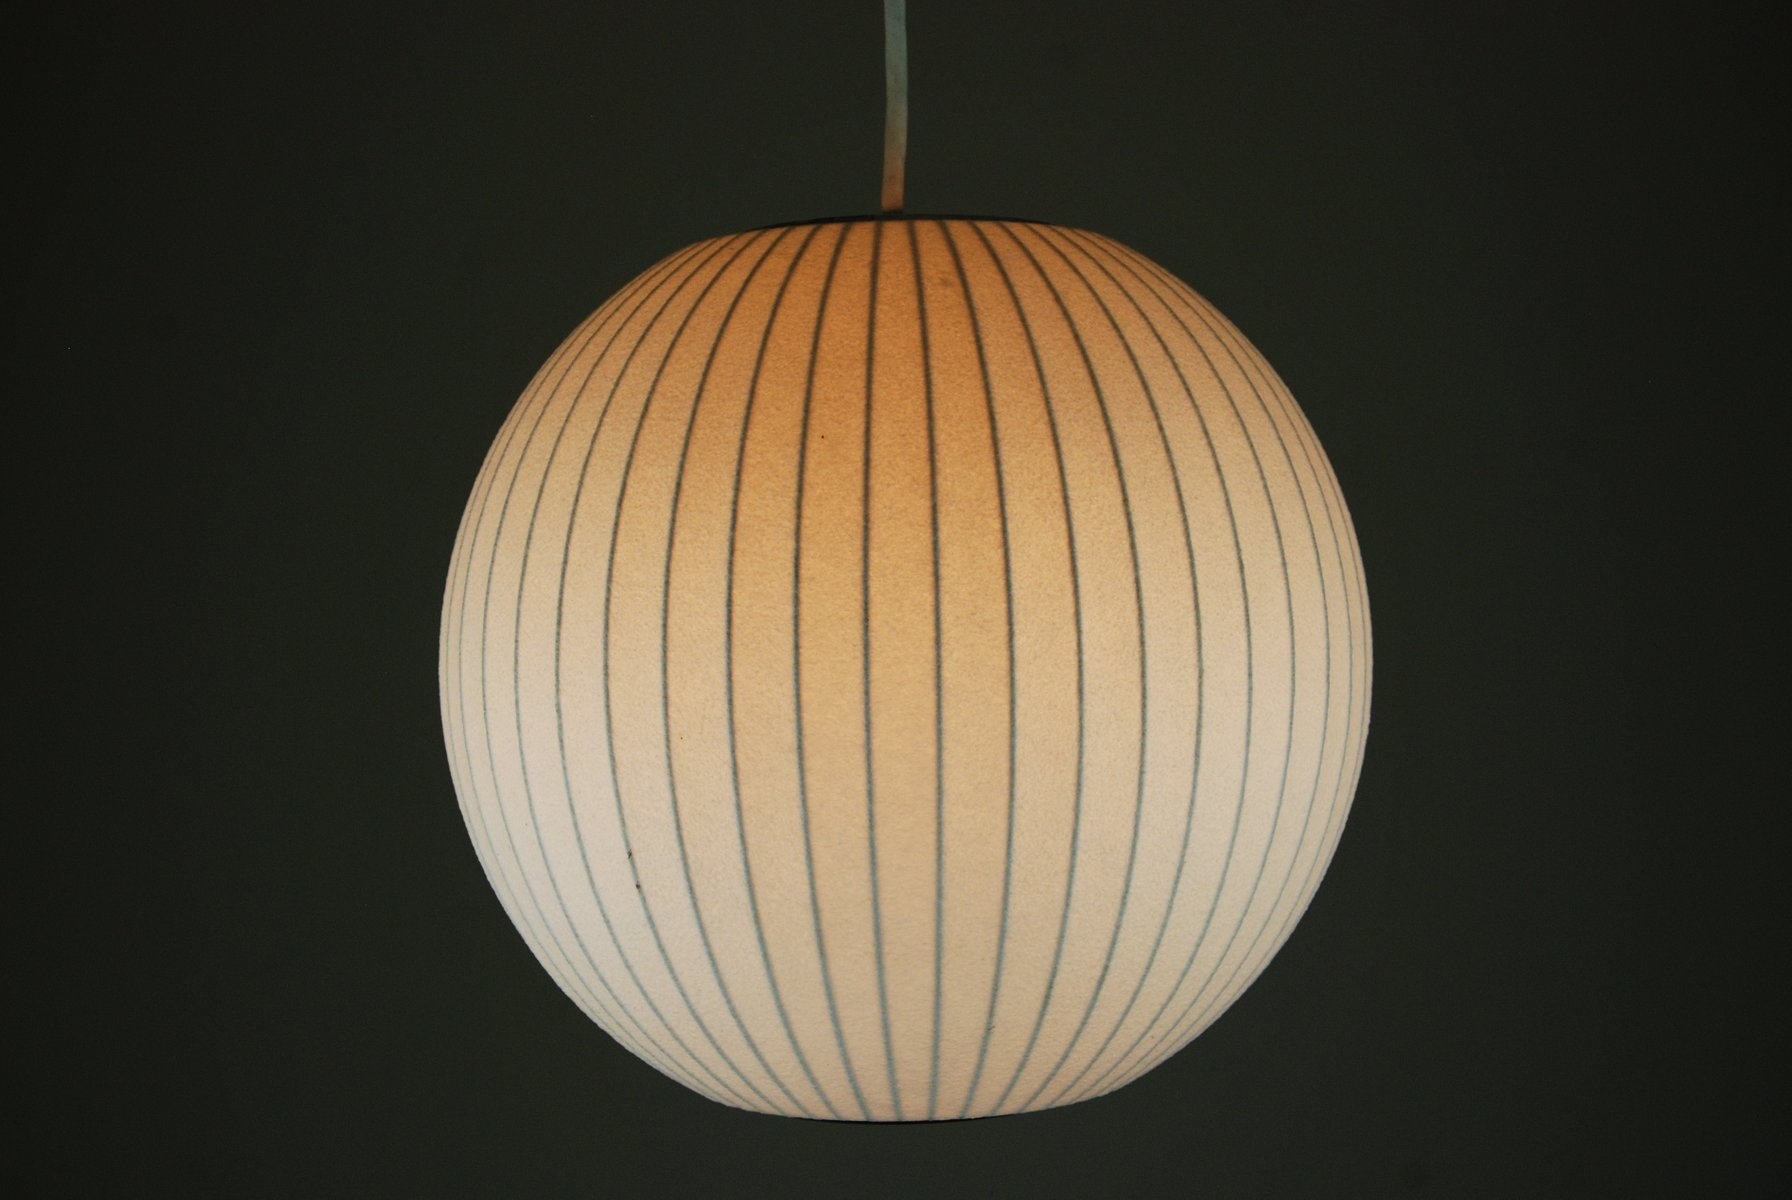 Lampe Ball Ball Lamp By George Nelson For Modernica